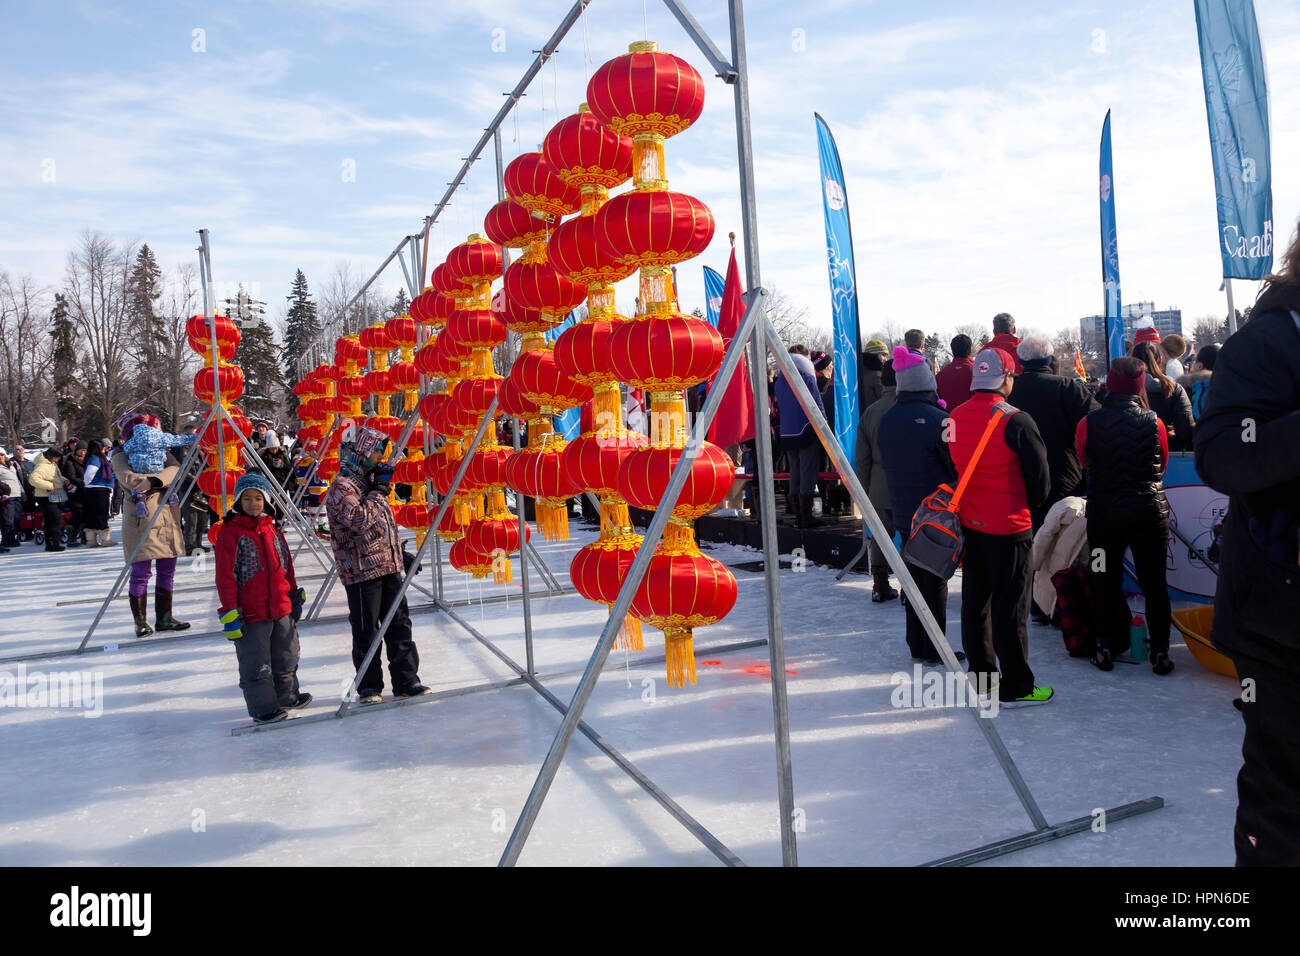 Chinses Later at Dow's Lake in Ottawa,Ontario,Canada, Capital city of Canada in the Winter, Winterlude 2017, - Stock Image